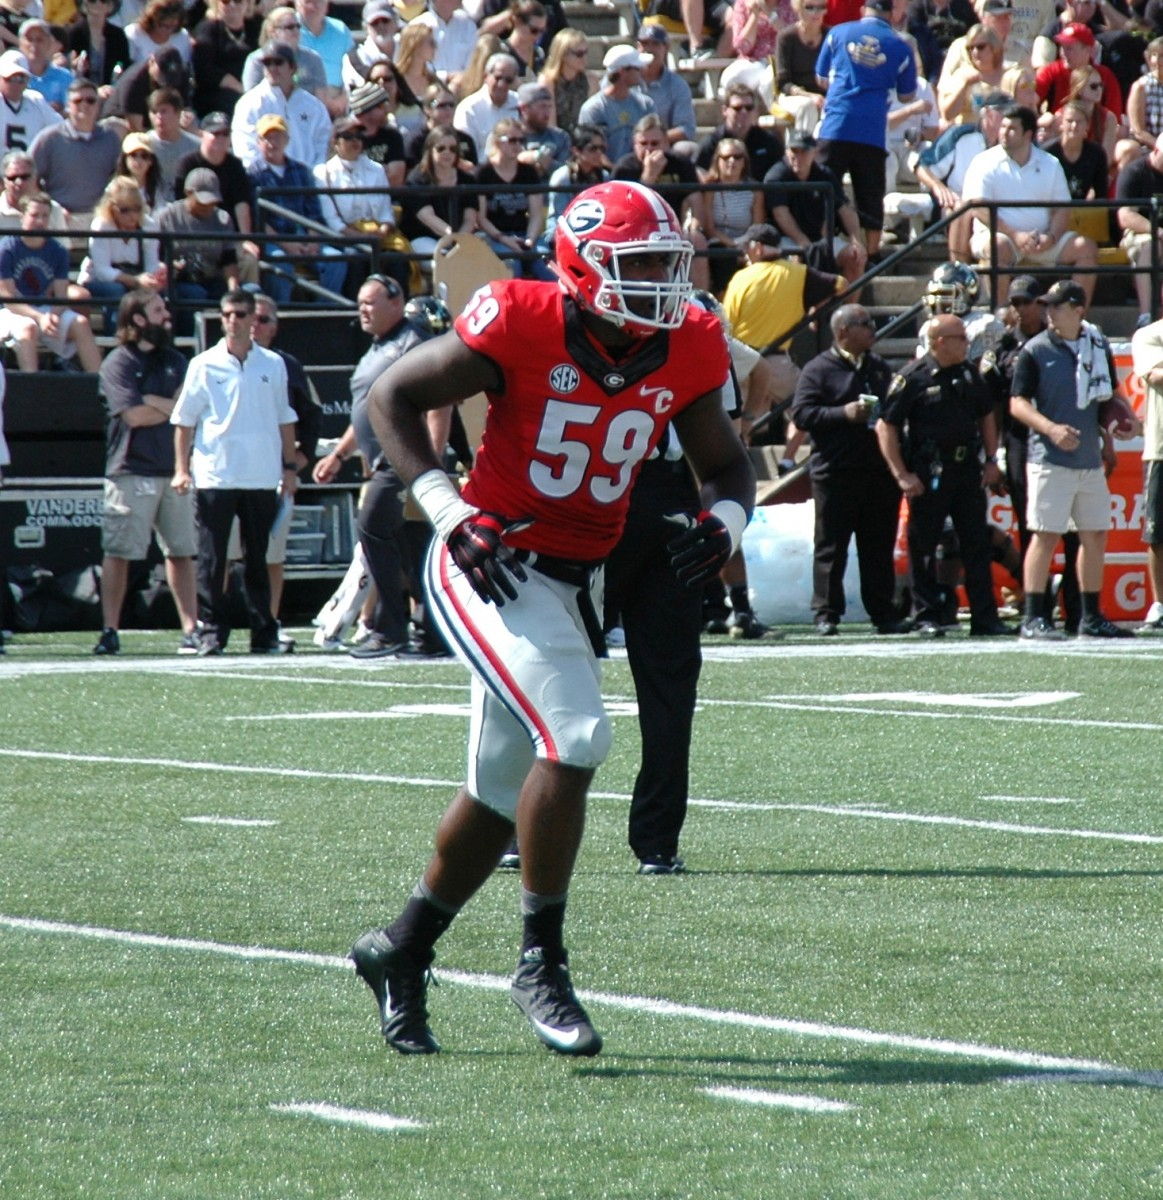 Jordan Jenkins - first half UGA vs Vandy 09-12-2015